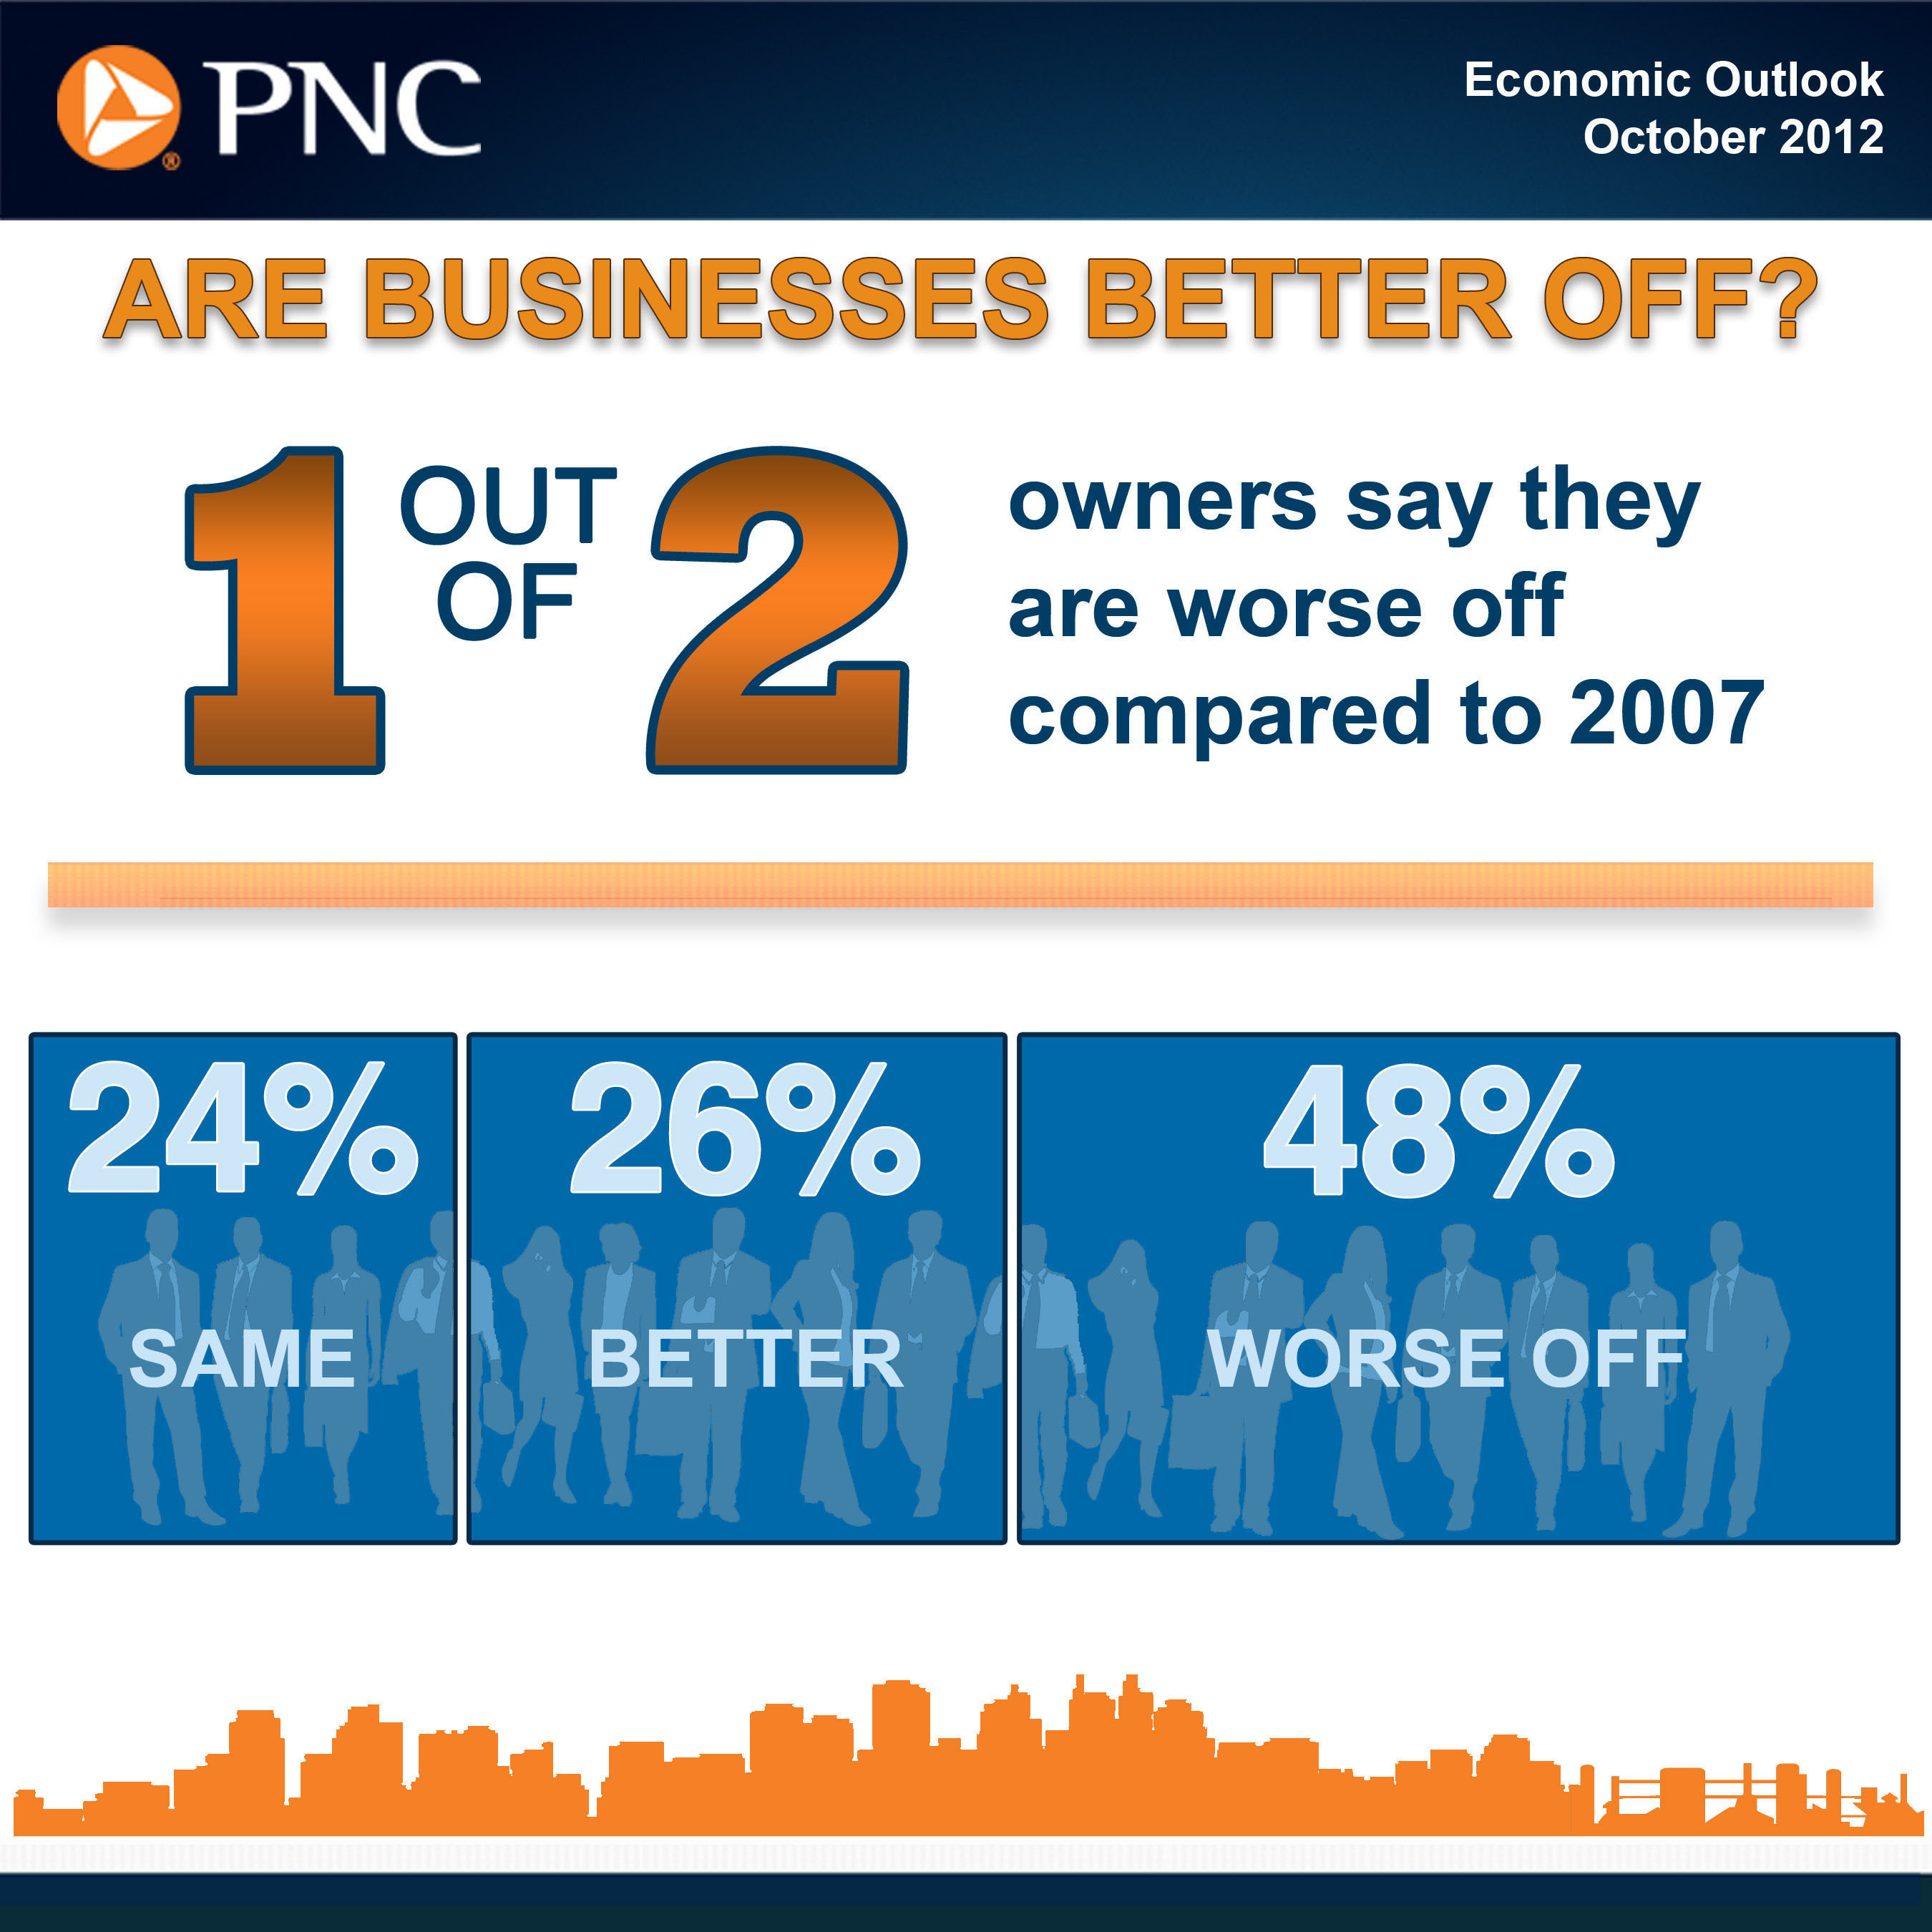 PNC Survey Findings Show Decline in Hiring, Expectations; Majority Say They Are Not 'Better Off.'  (PRNewsFoto/PNC Financial Services Group)